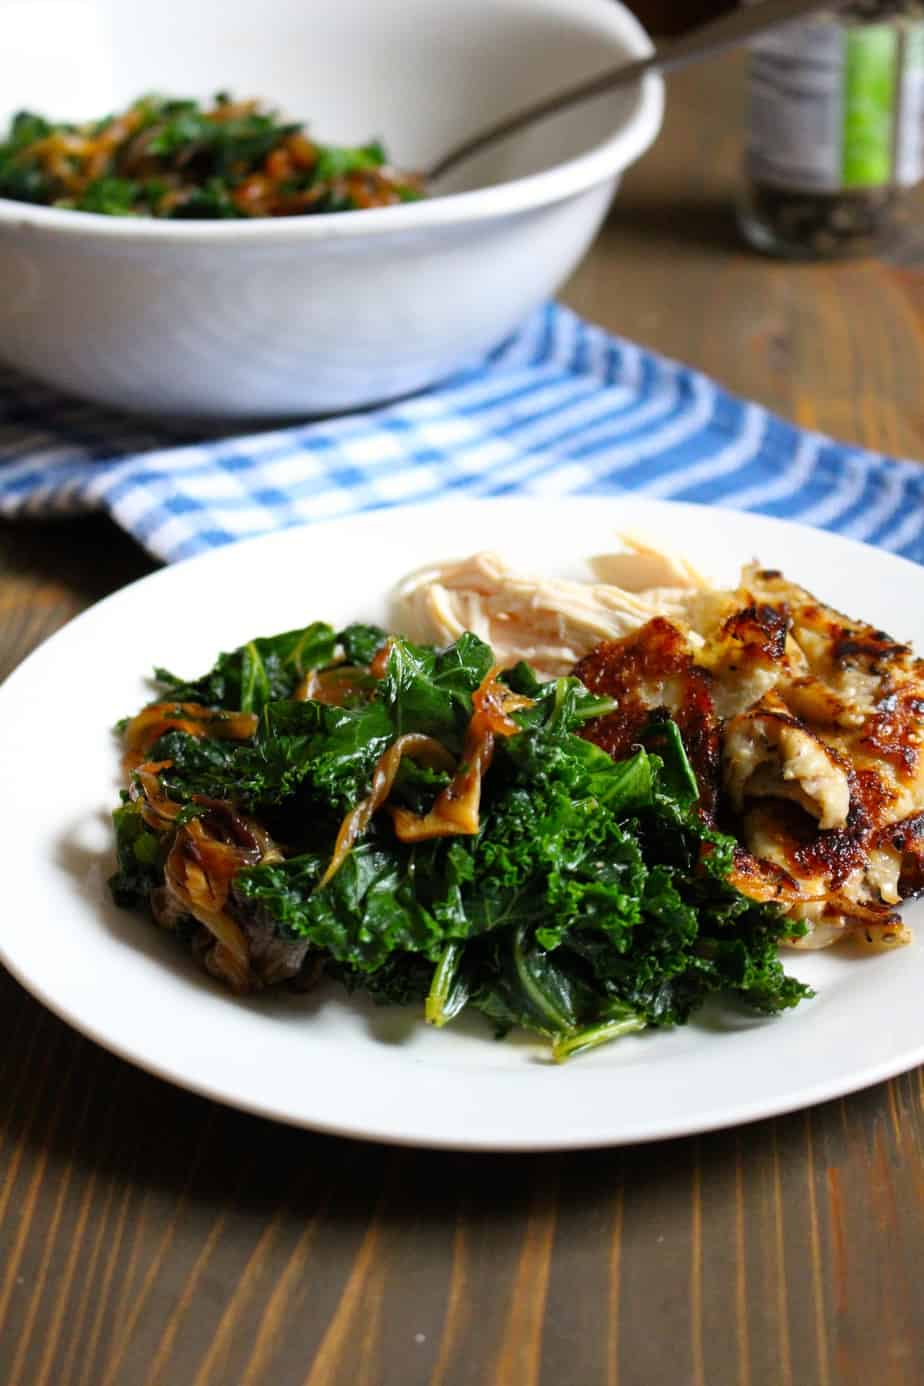 Caramelized Onions + Kale with Rotisserie Chicken | Frugal Nutrition